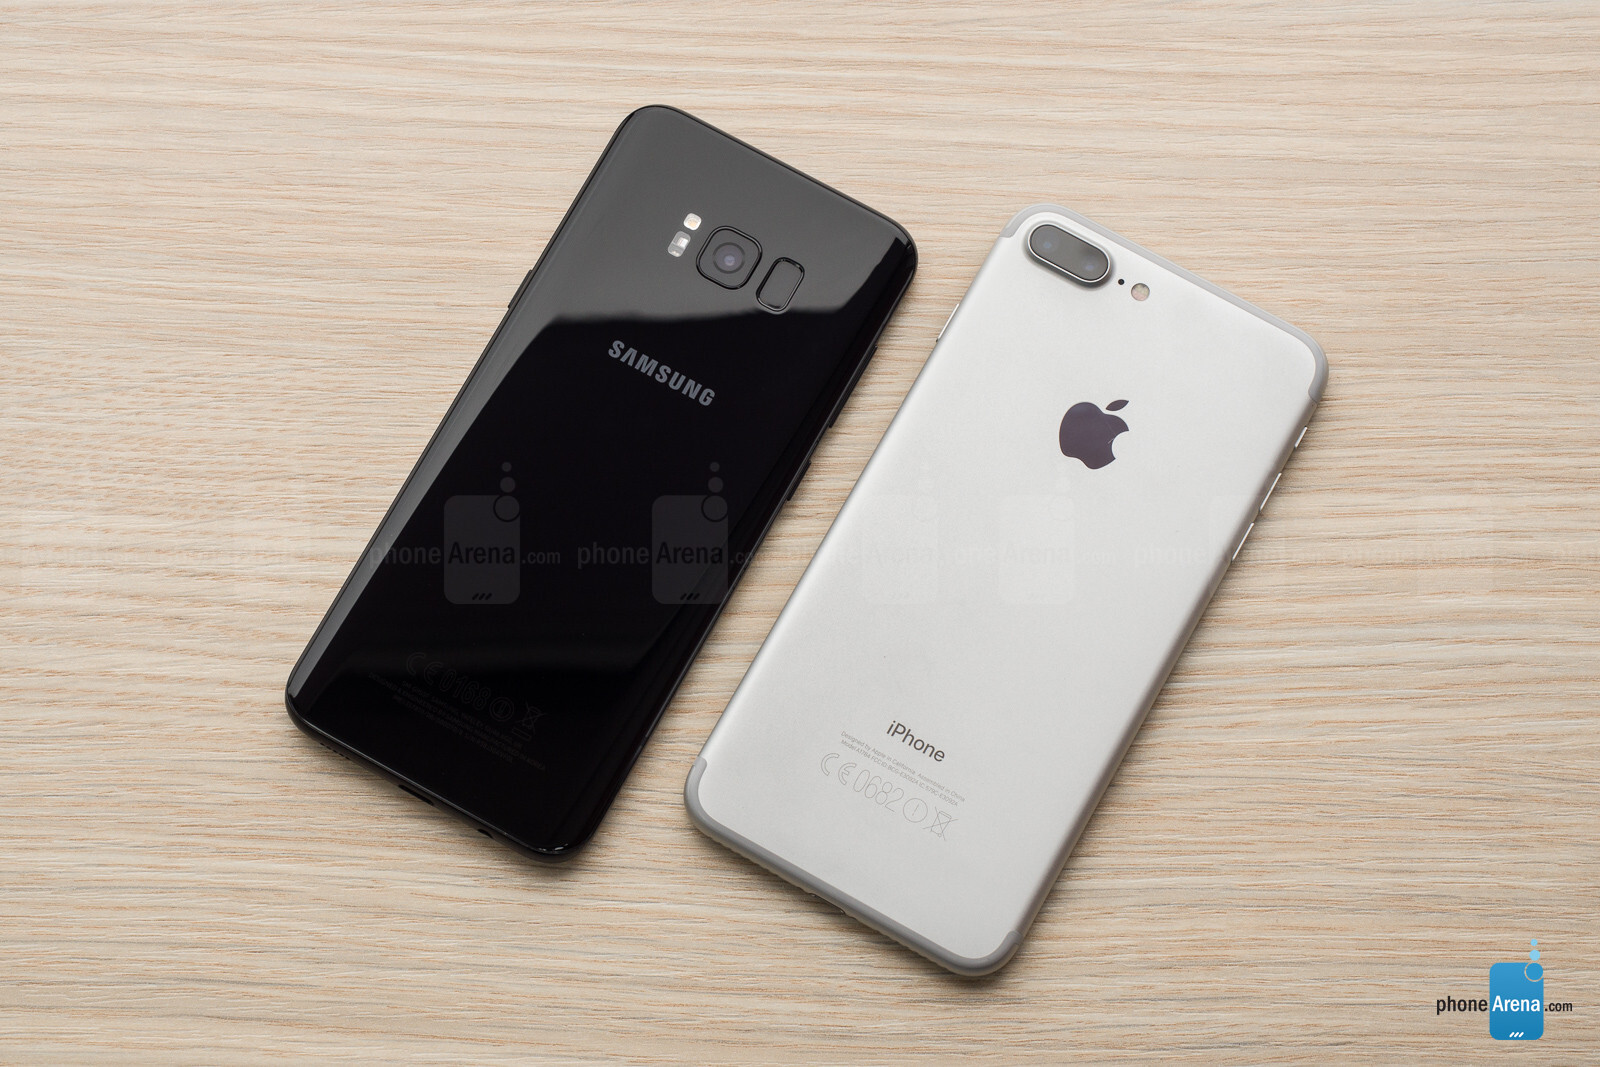 apple iphone vs samsung s8